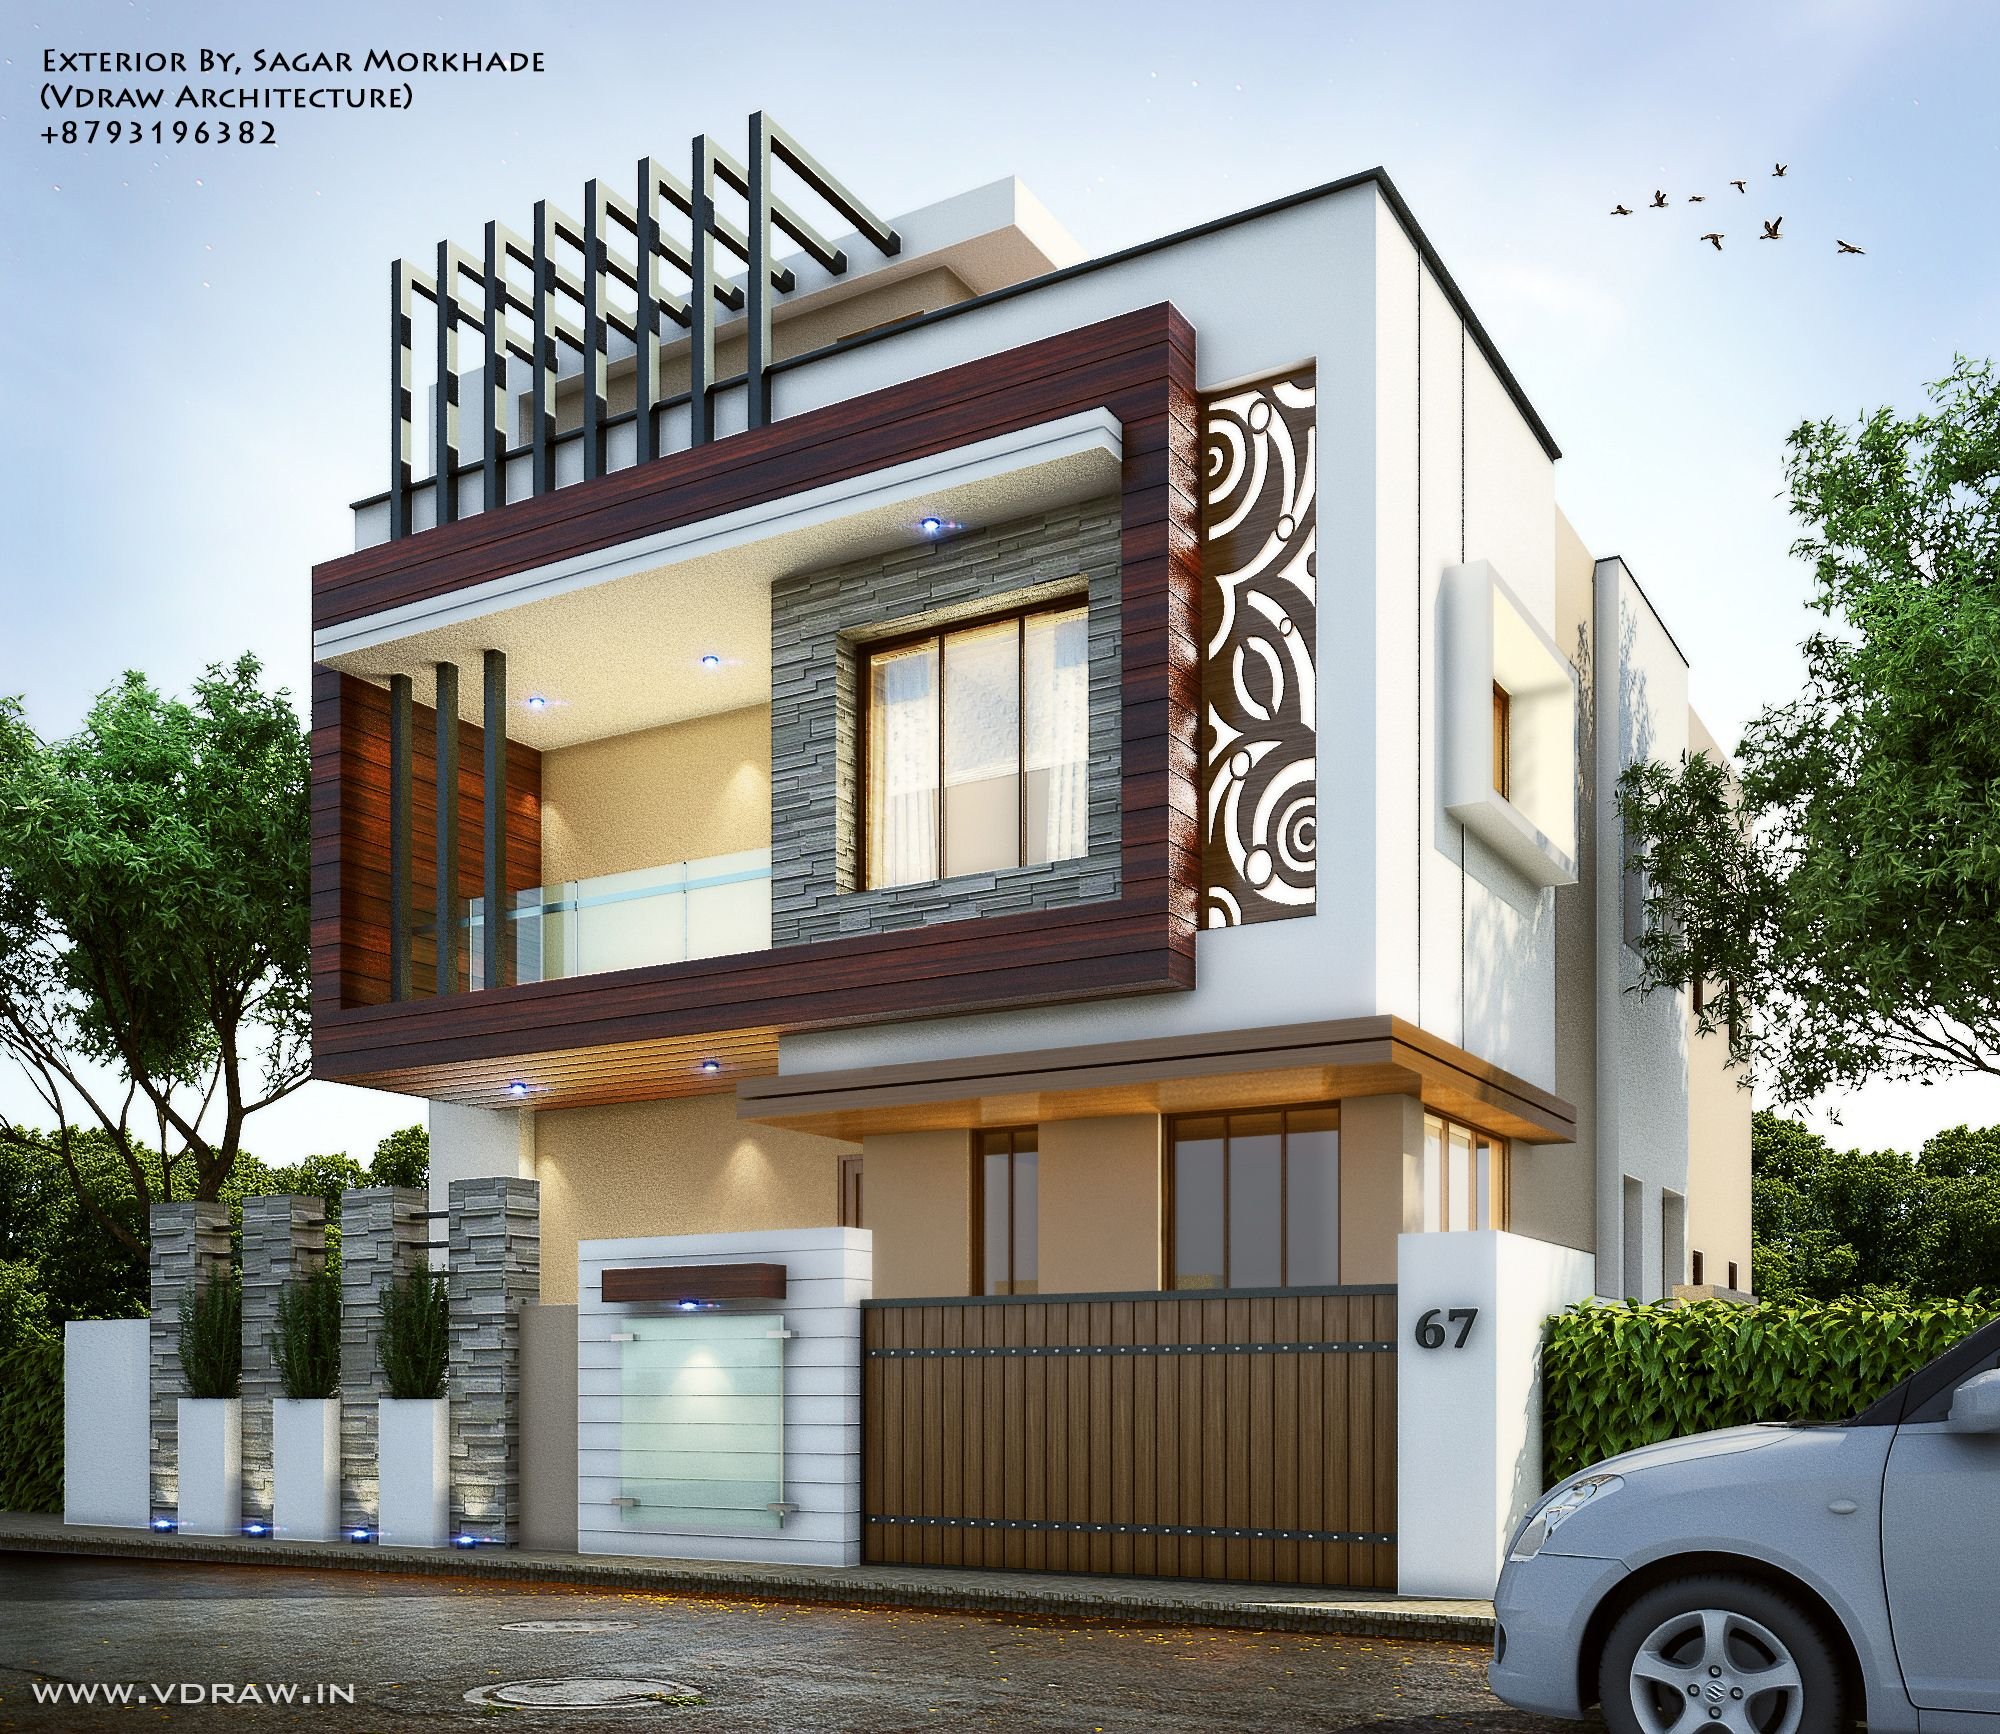 High End Home Design Ideas: Exterior By, Sagar Morkhade (Vdraw Architecture